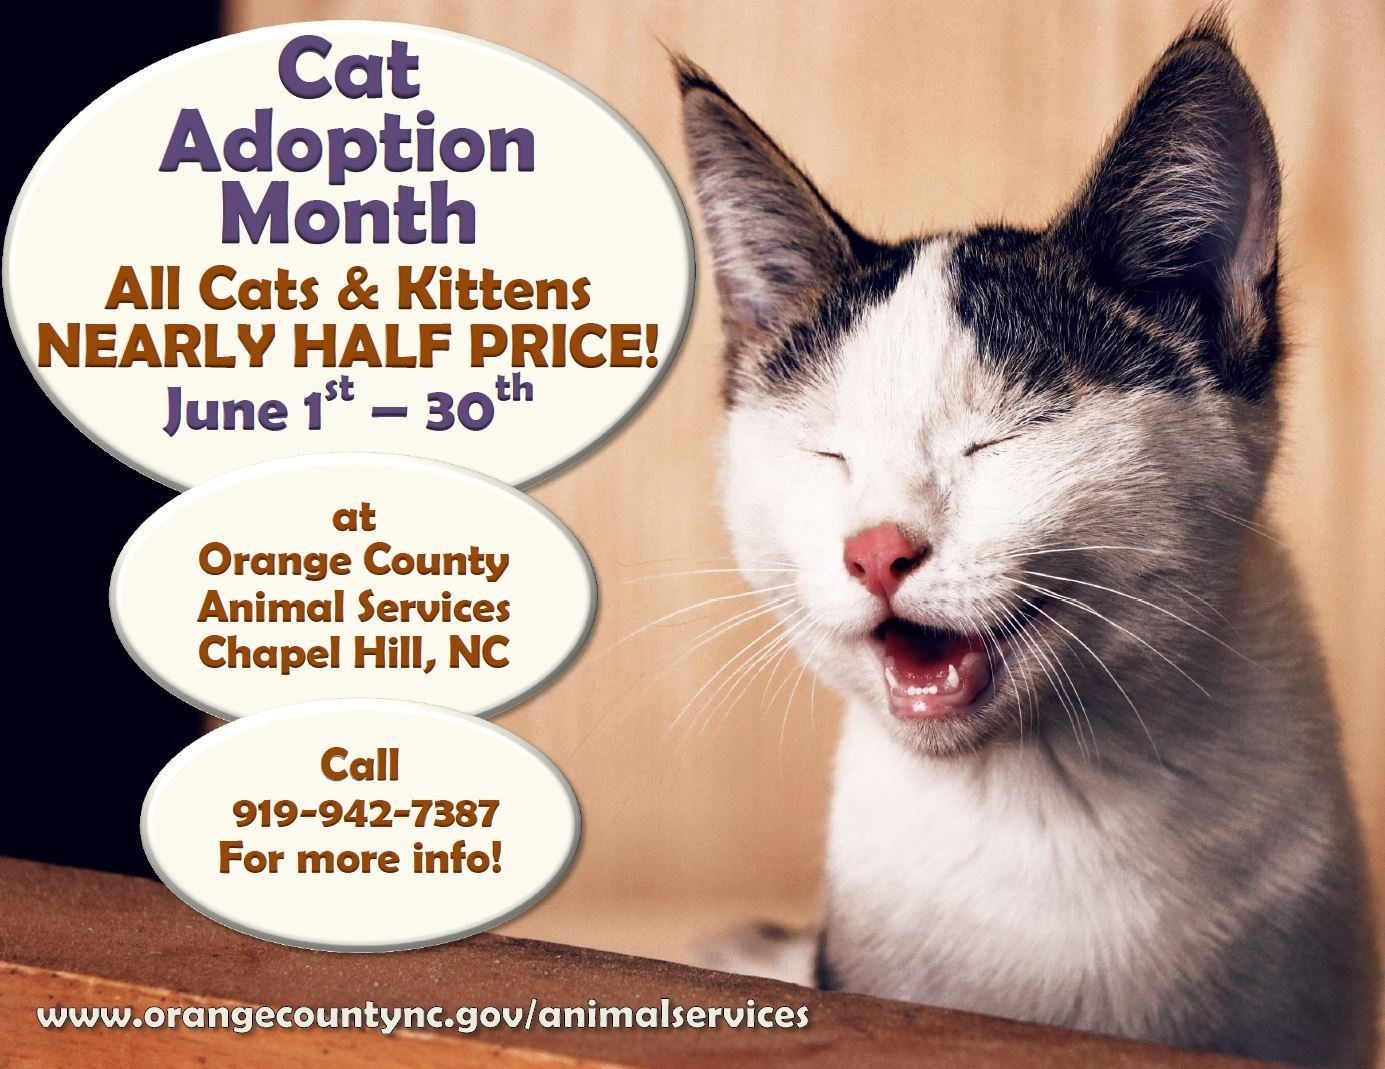 June Is Cat Adoption Month Opens in new window